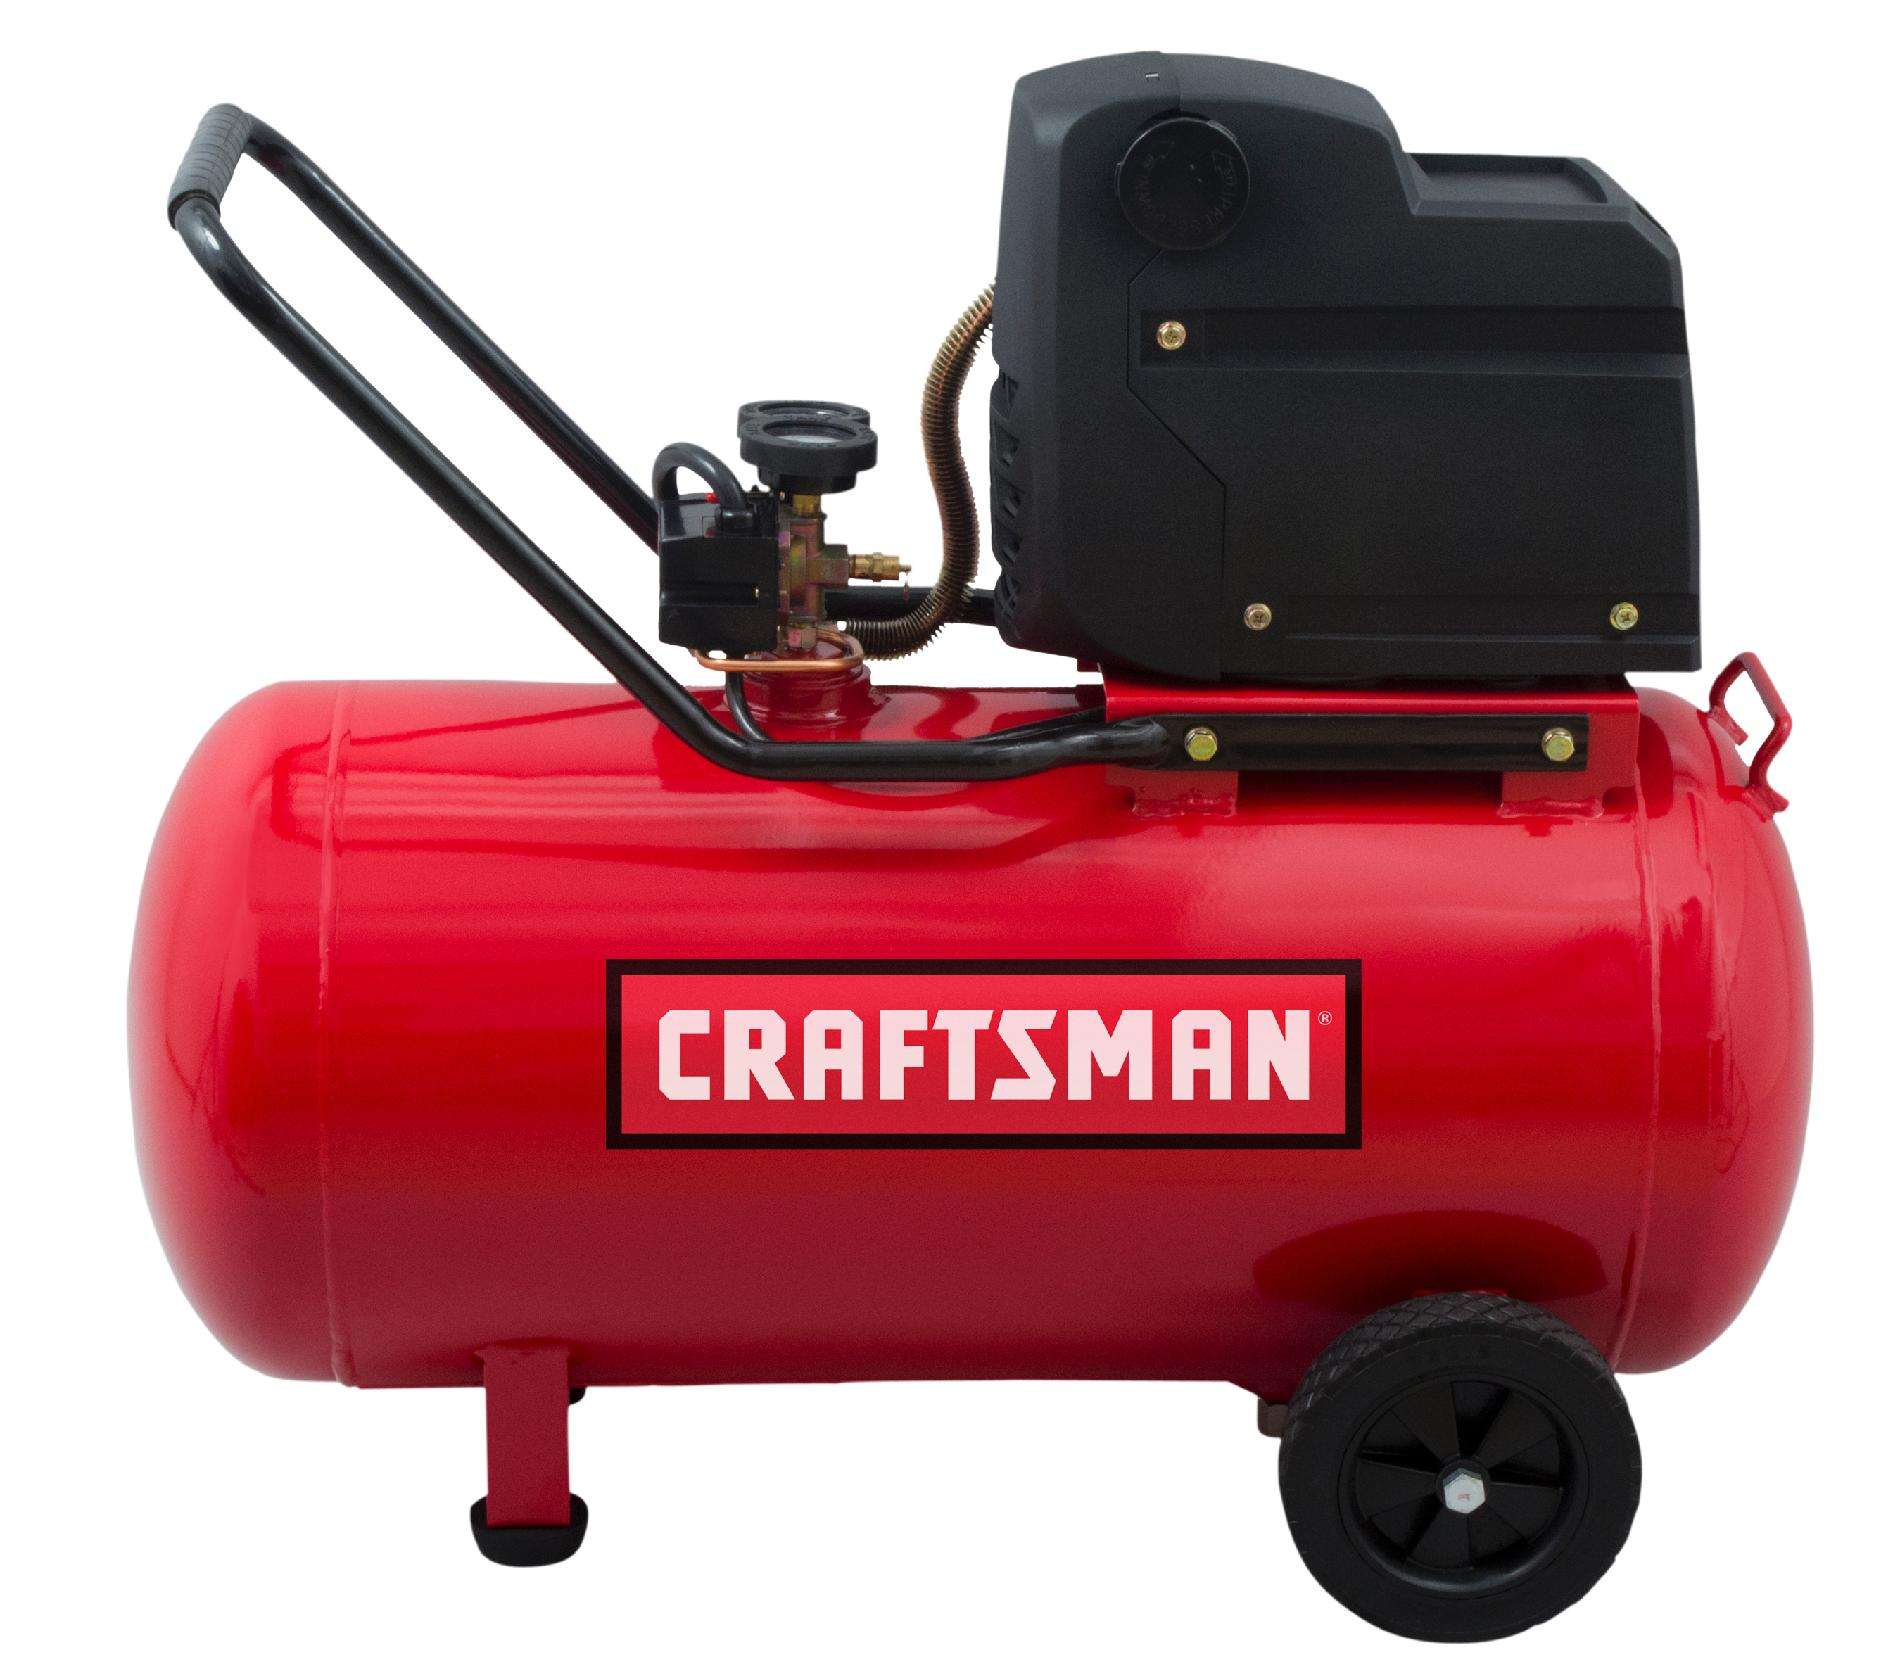 Craftsman 20 Gallon Oil-Free Portable Horizontal Air Compressor